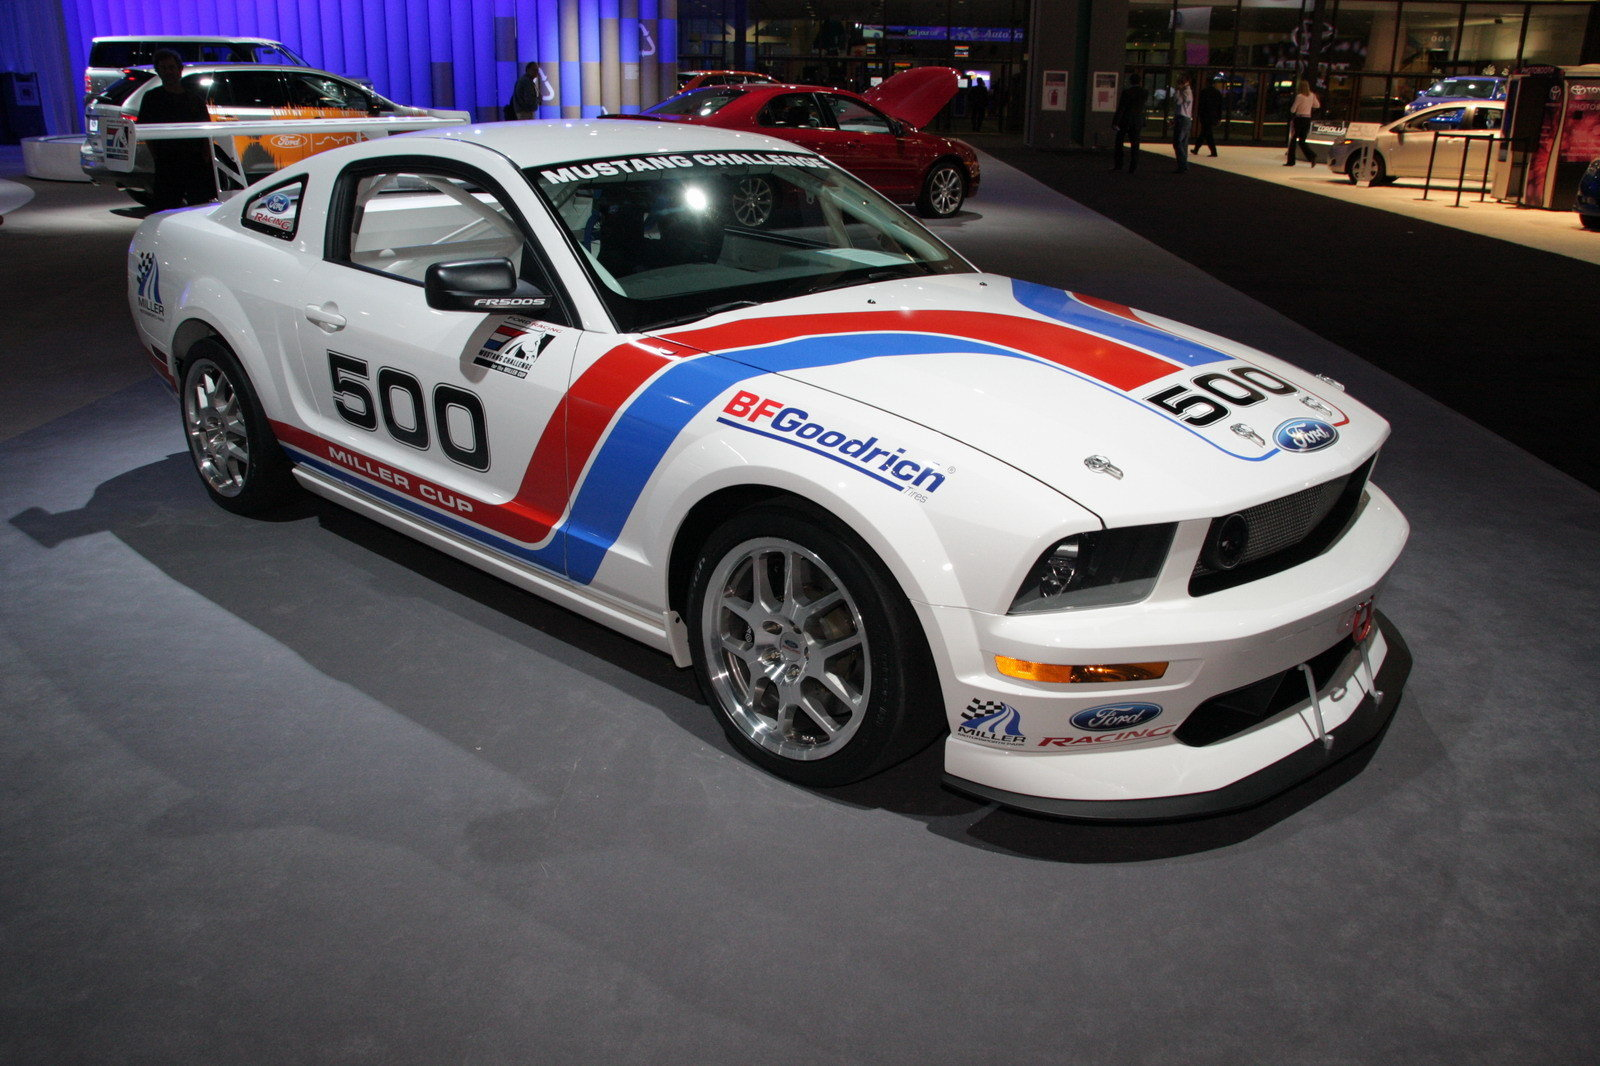 Ford Mustang News And Reviews Top Speed 8l Under Hood Exploded Diagrams Tccoa Forums Fr500s Launched